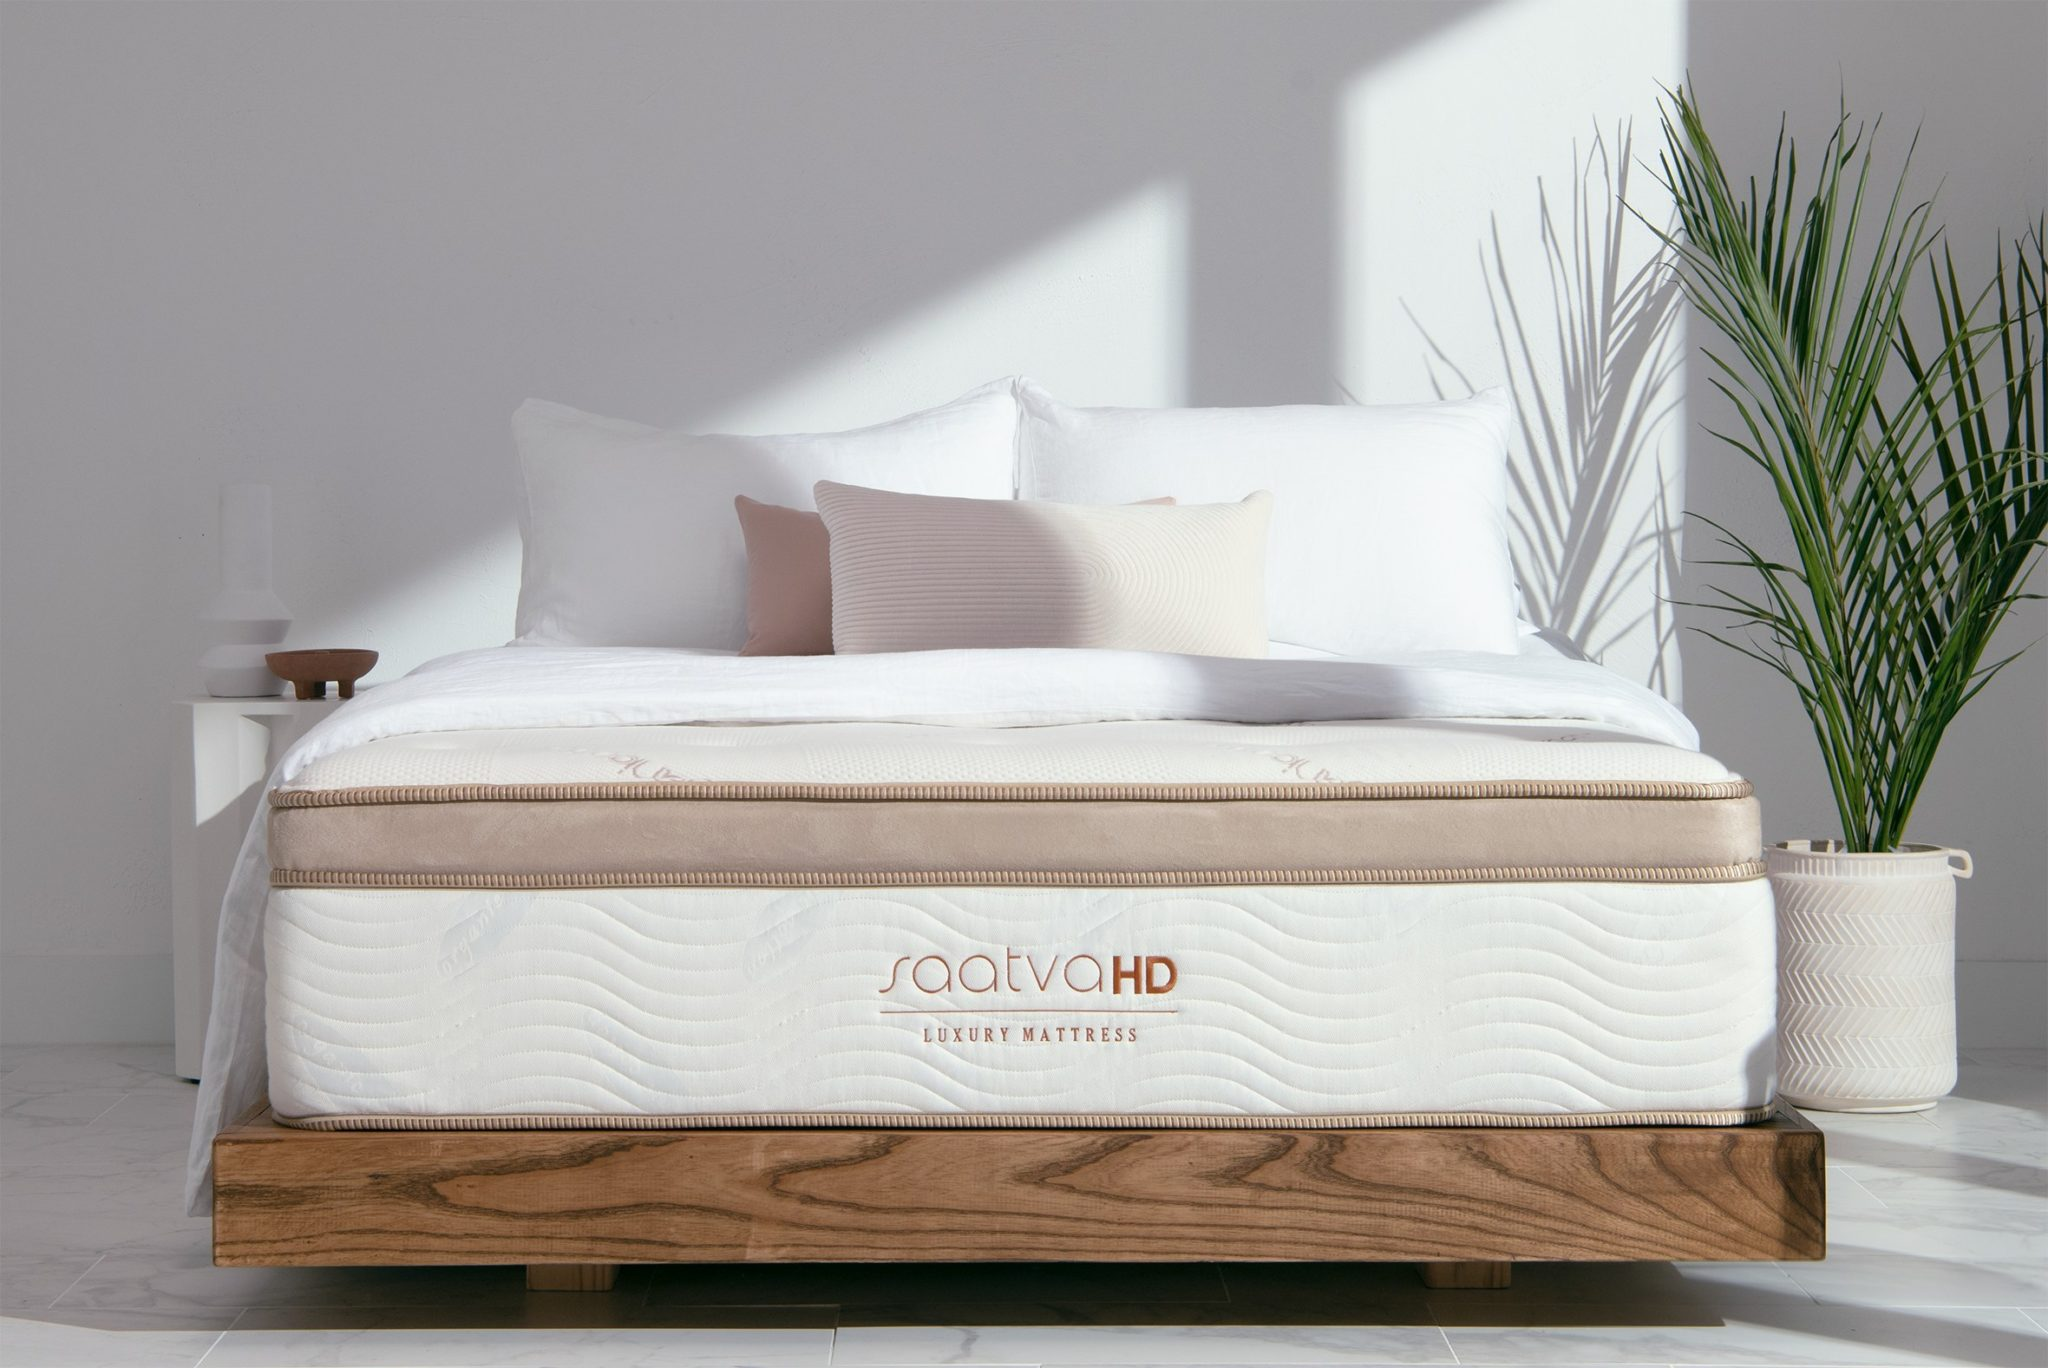 saatva hd vs big fig mattress